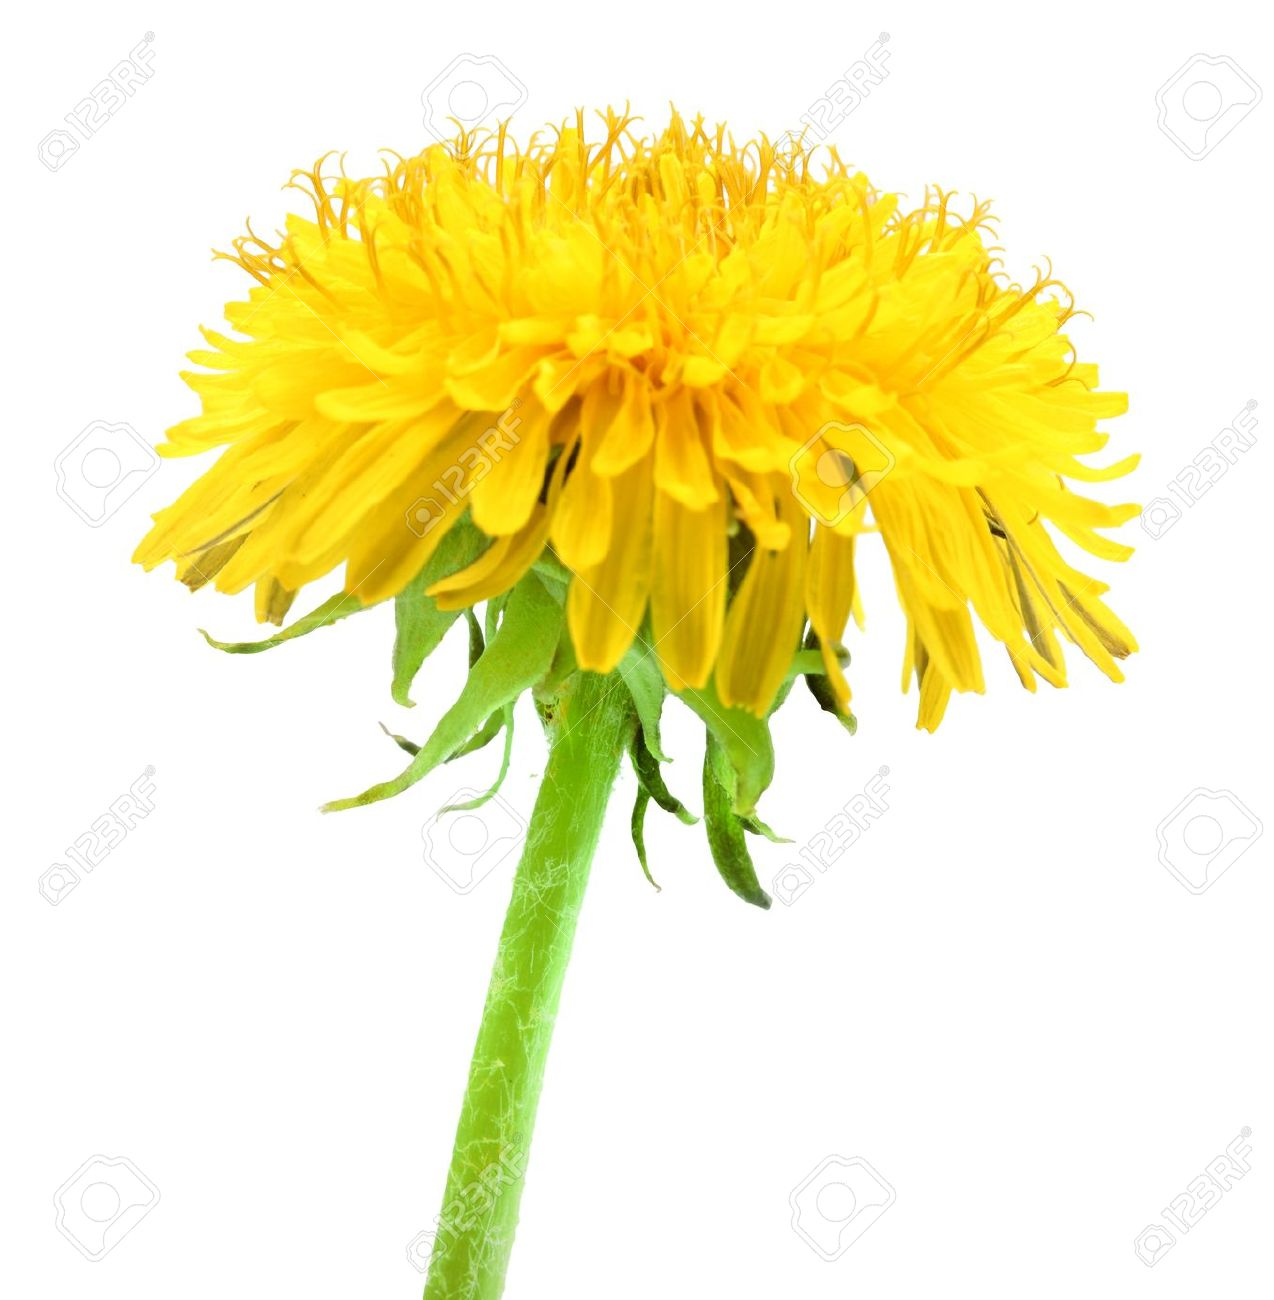 One yellow flower of dandelion isolated on white background. Close-up. Studio photography. Stock Photo - 10225275